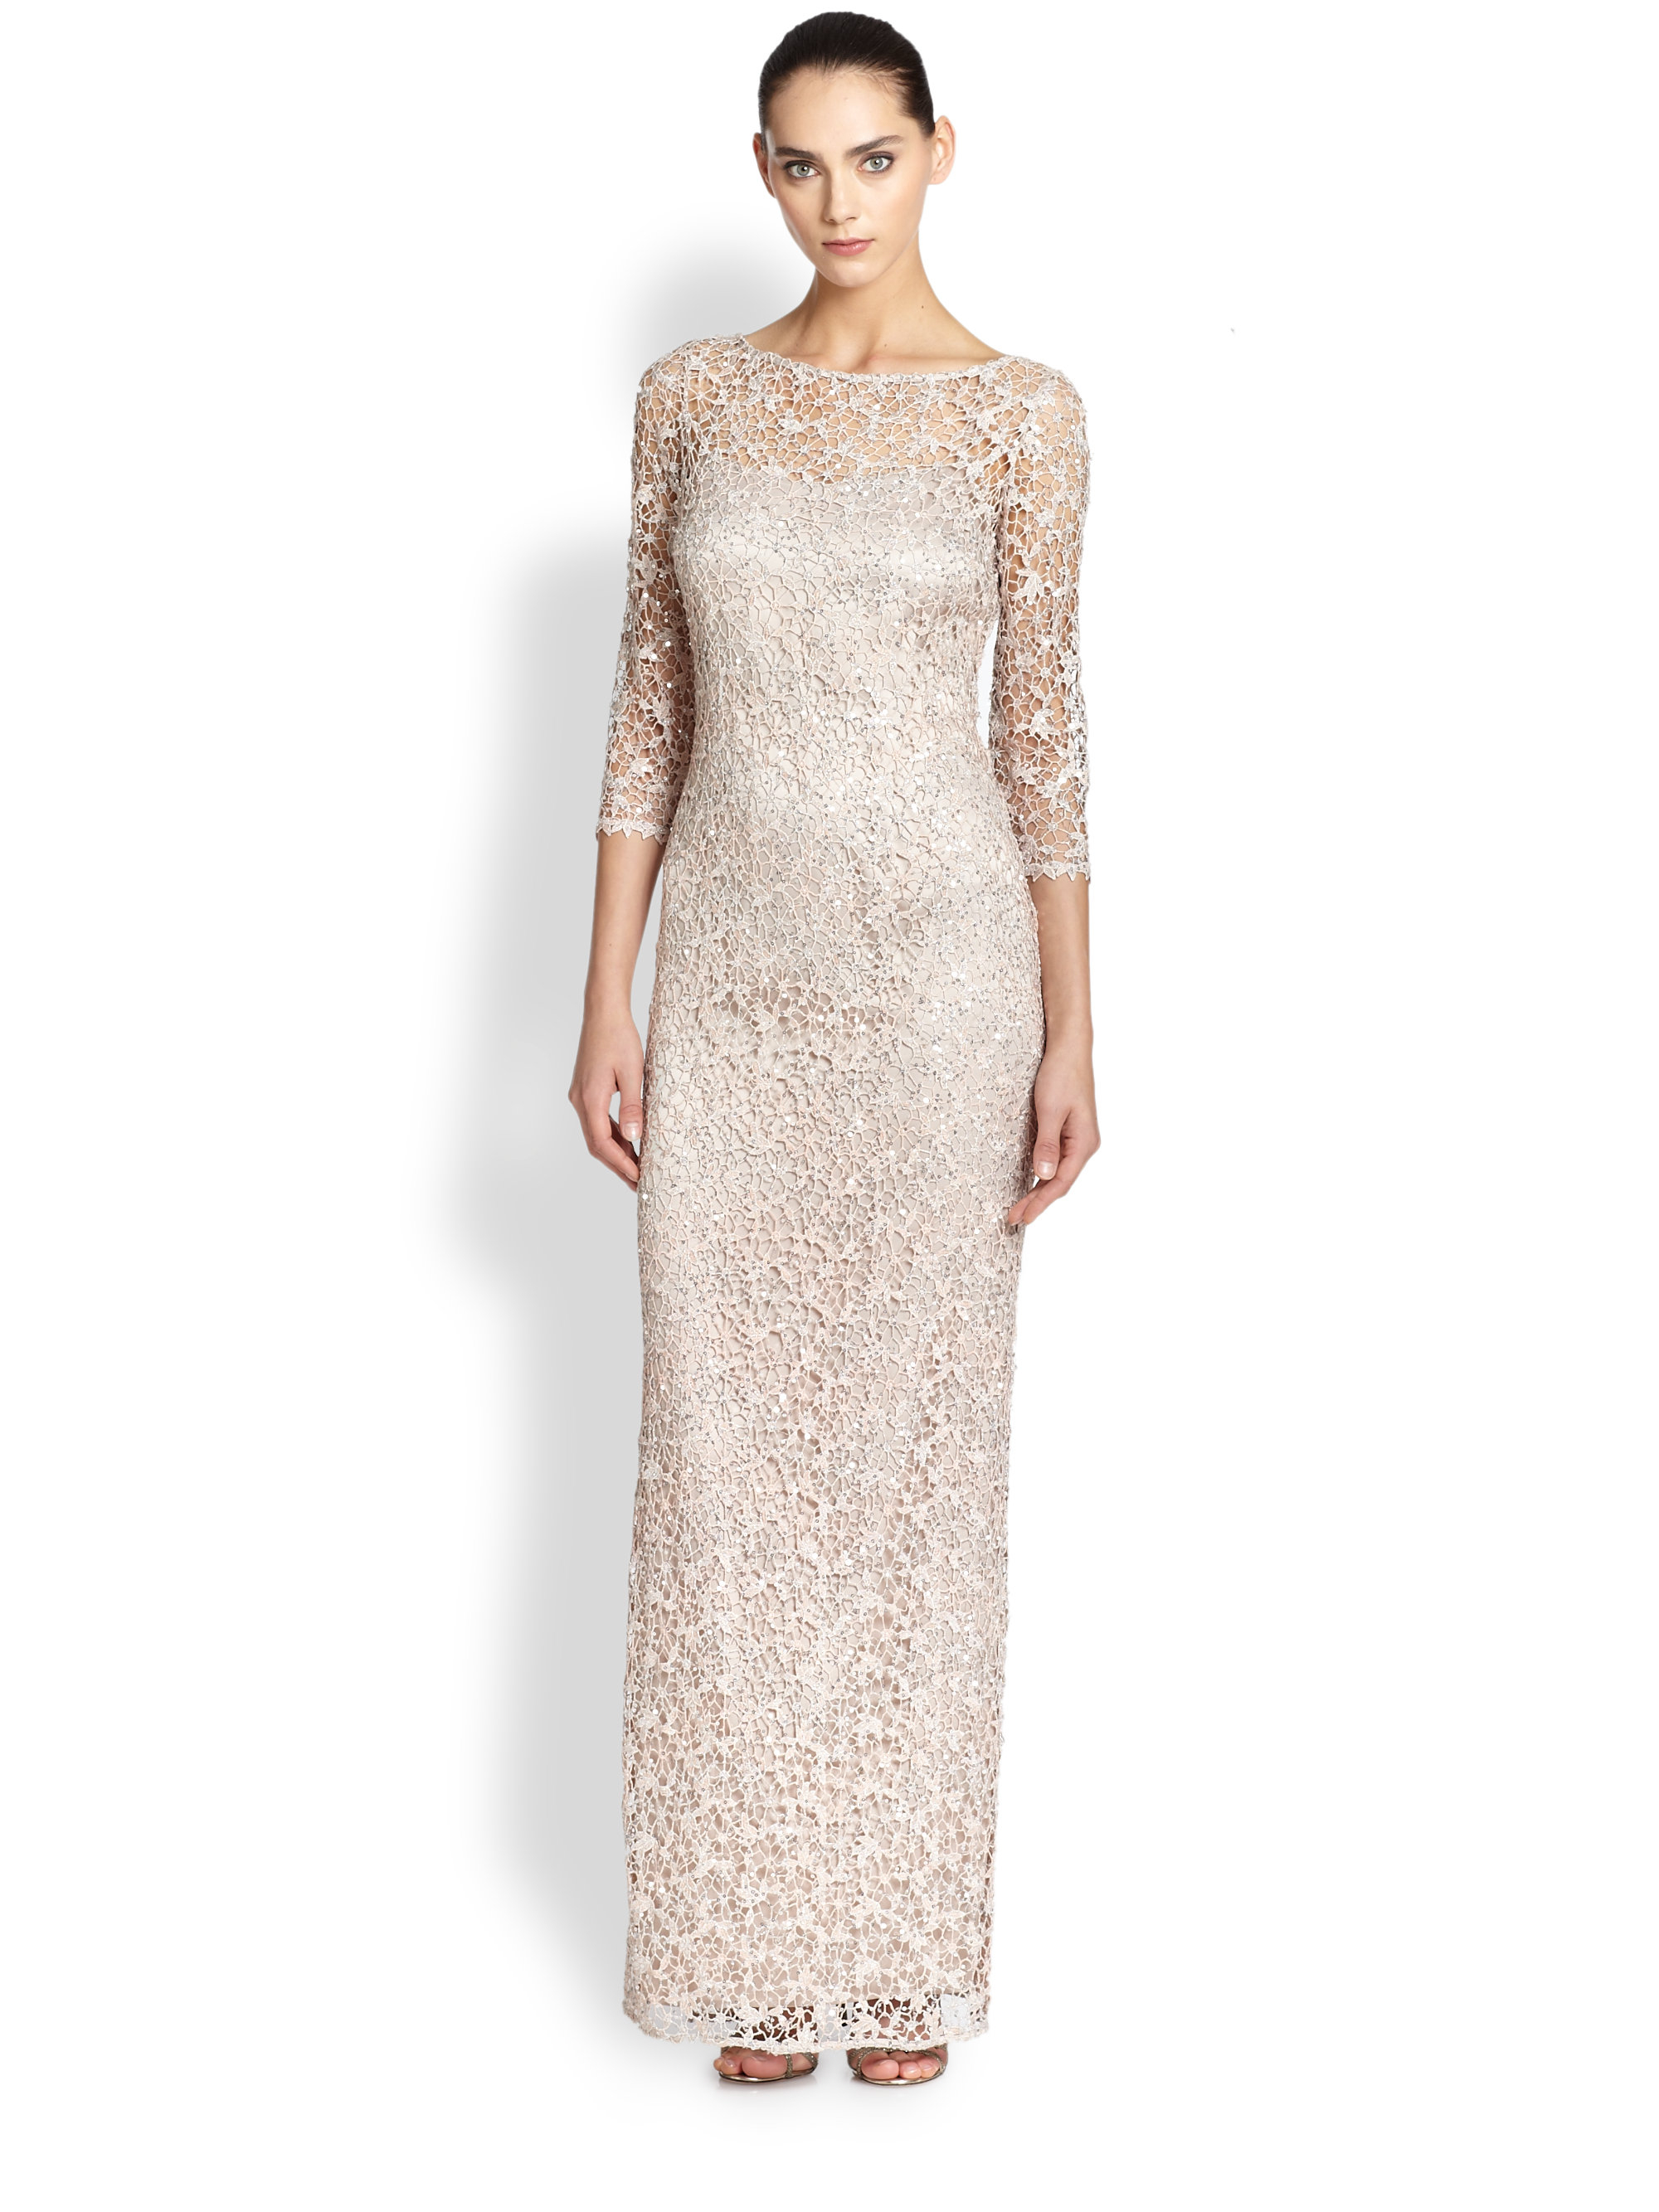 Lyst - Kay Unger Metallic Sequined Lace Gown in Metallic